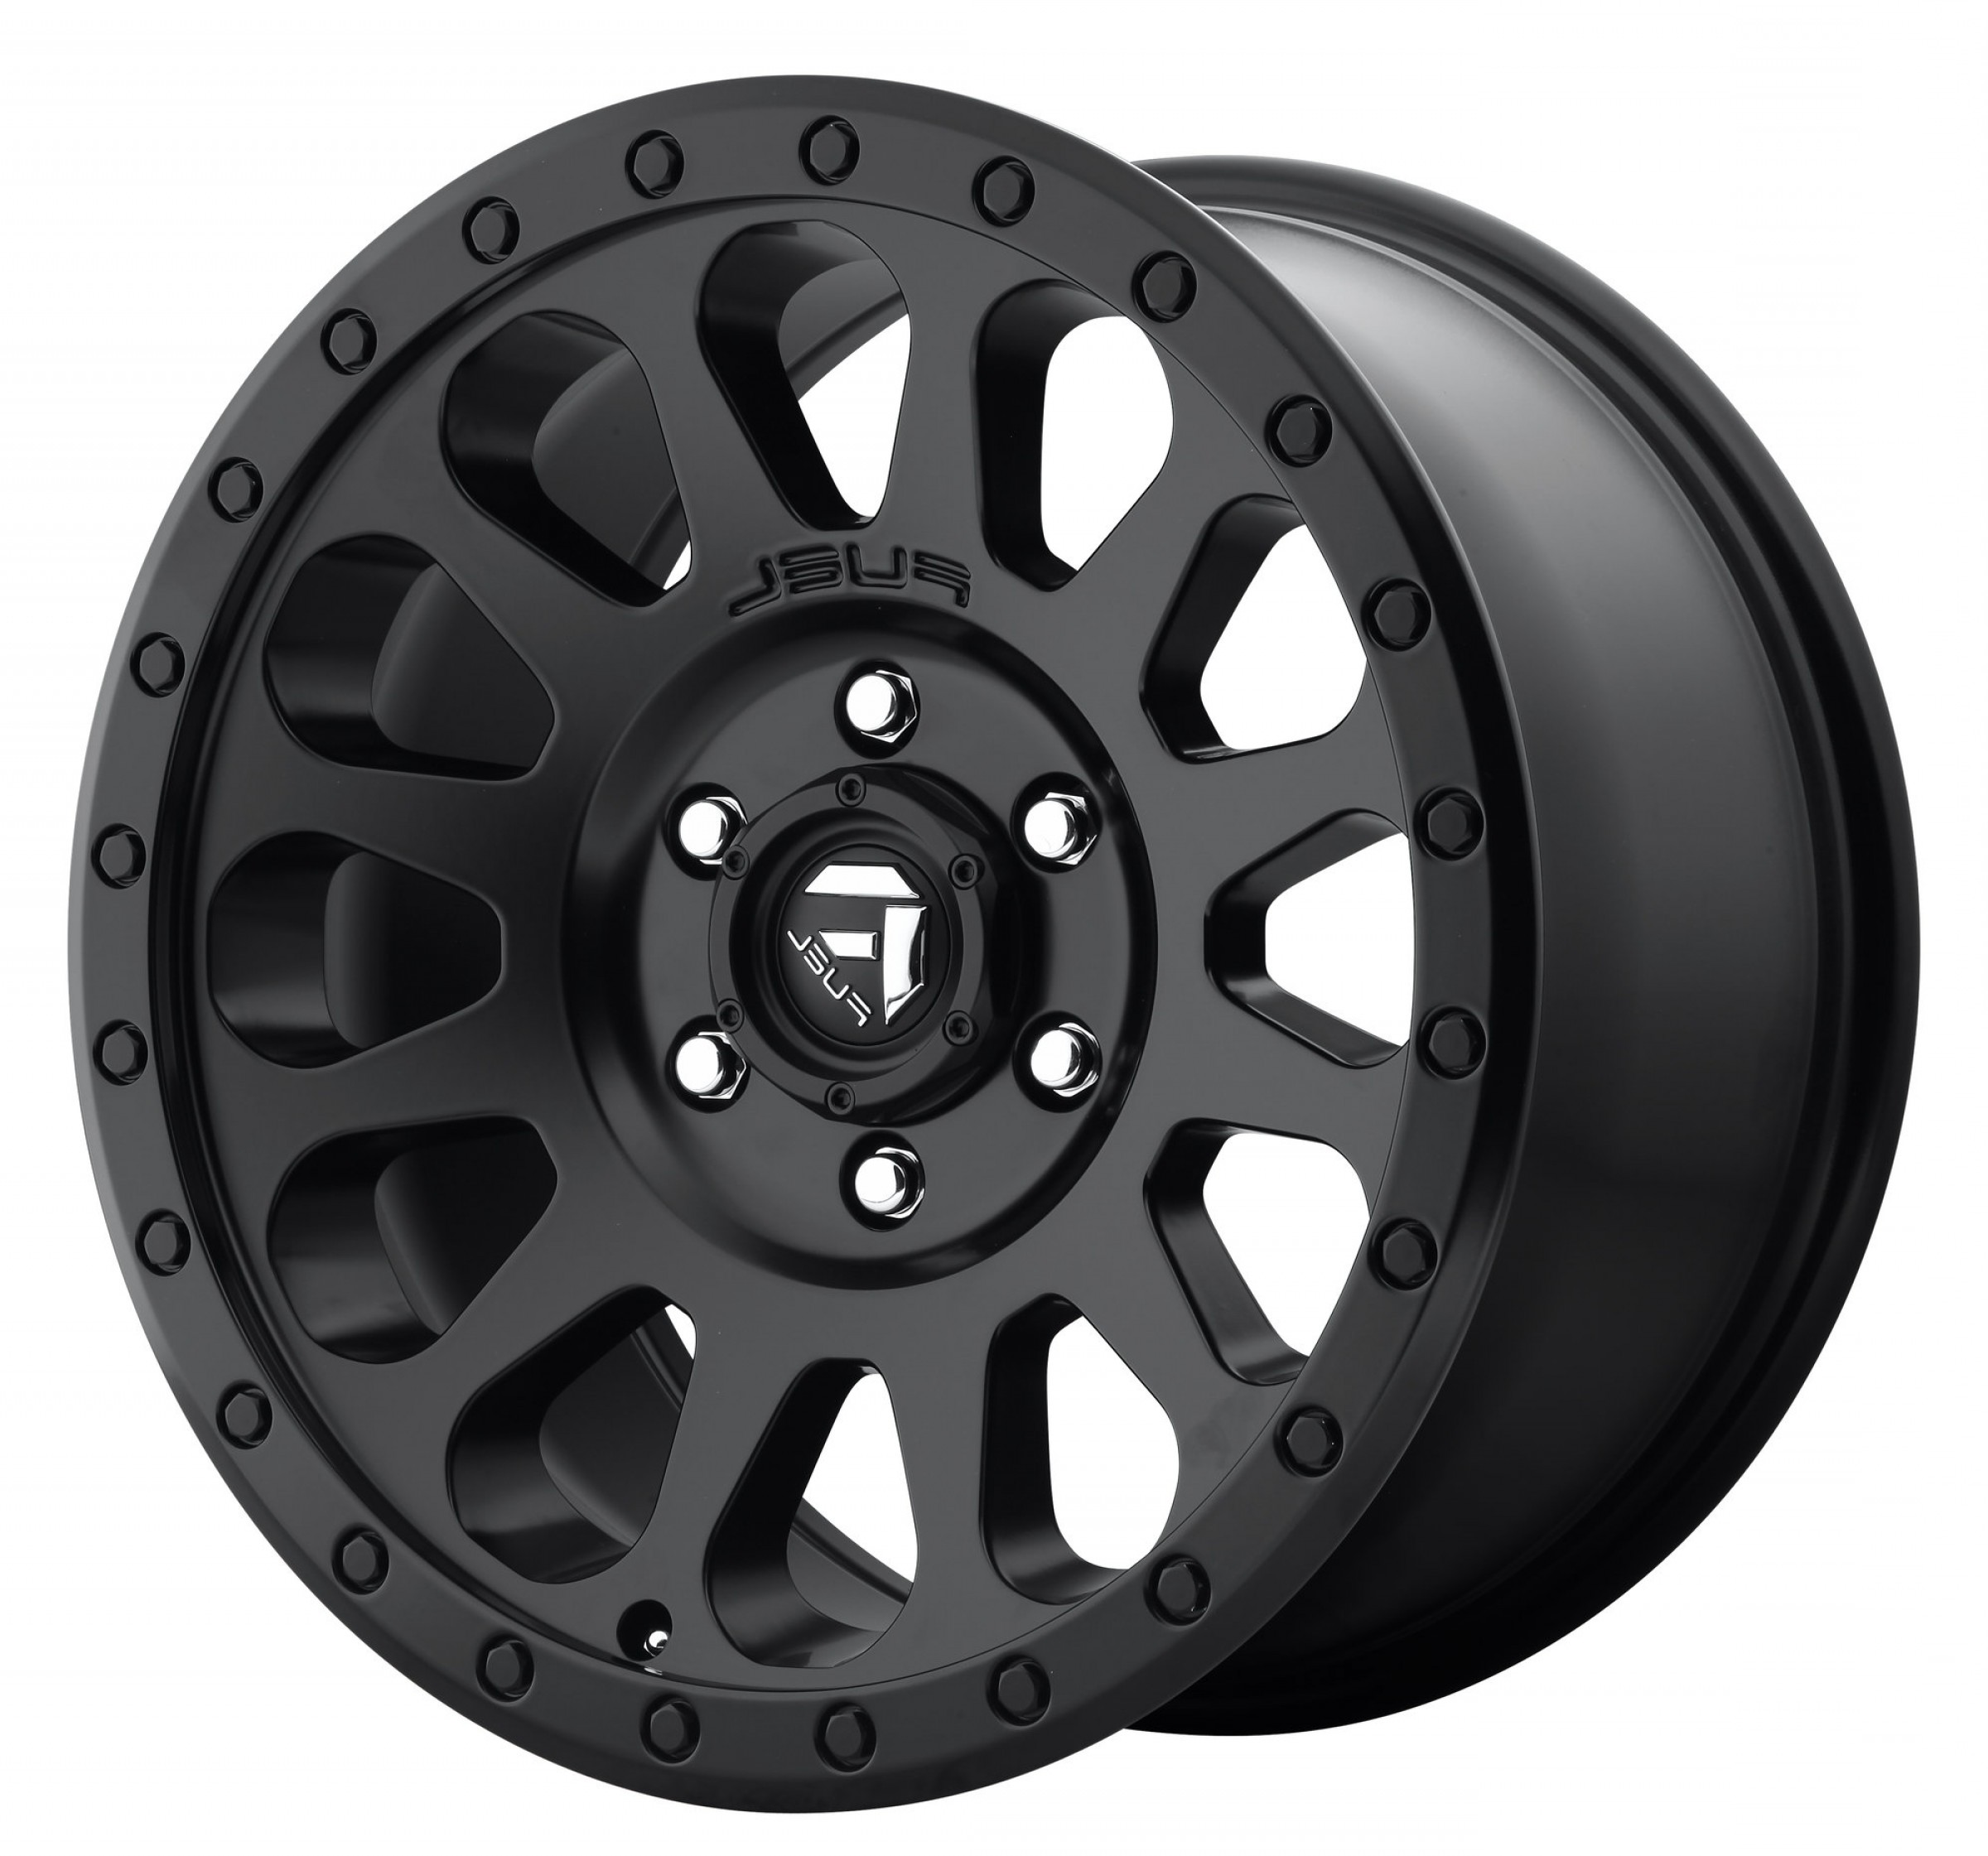 2014 Jeep Wrangler Vector: Vector Black Piece Alloy Wheel Jeep Vehicles X Bolt Pattern